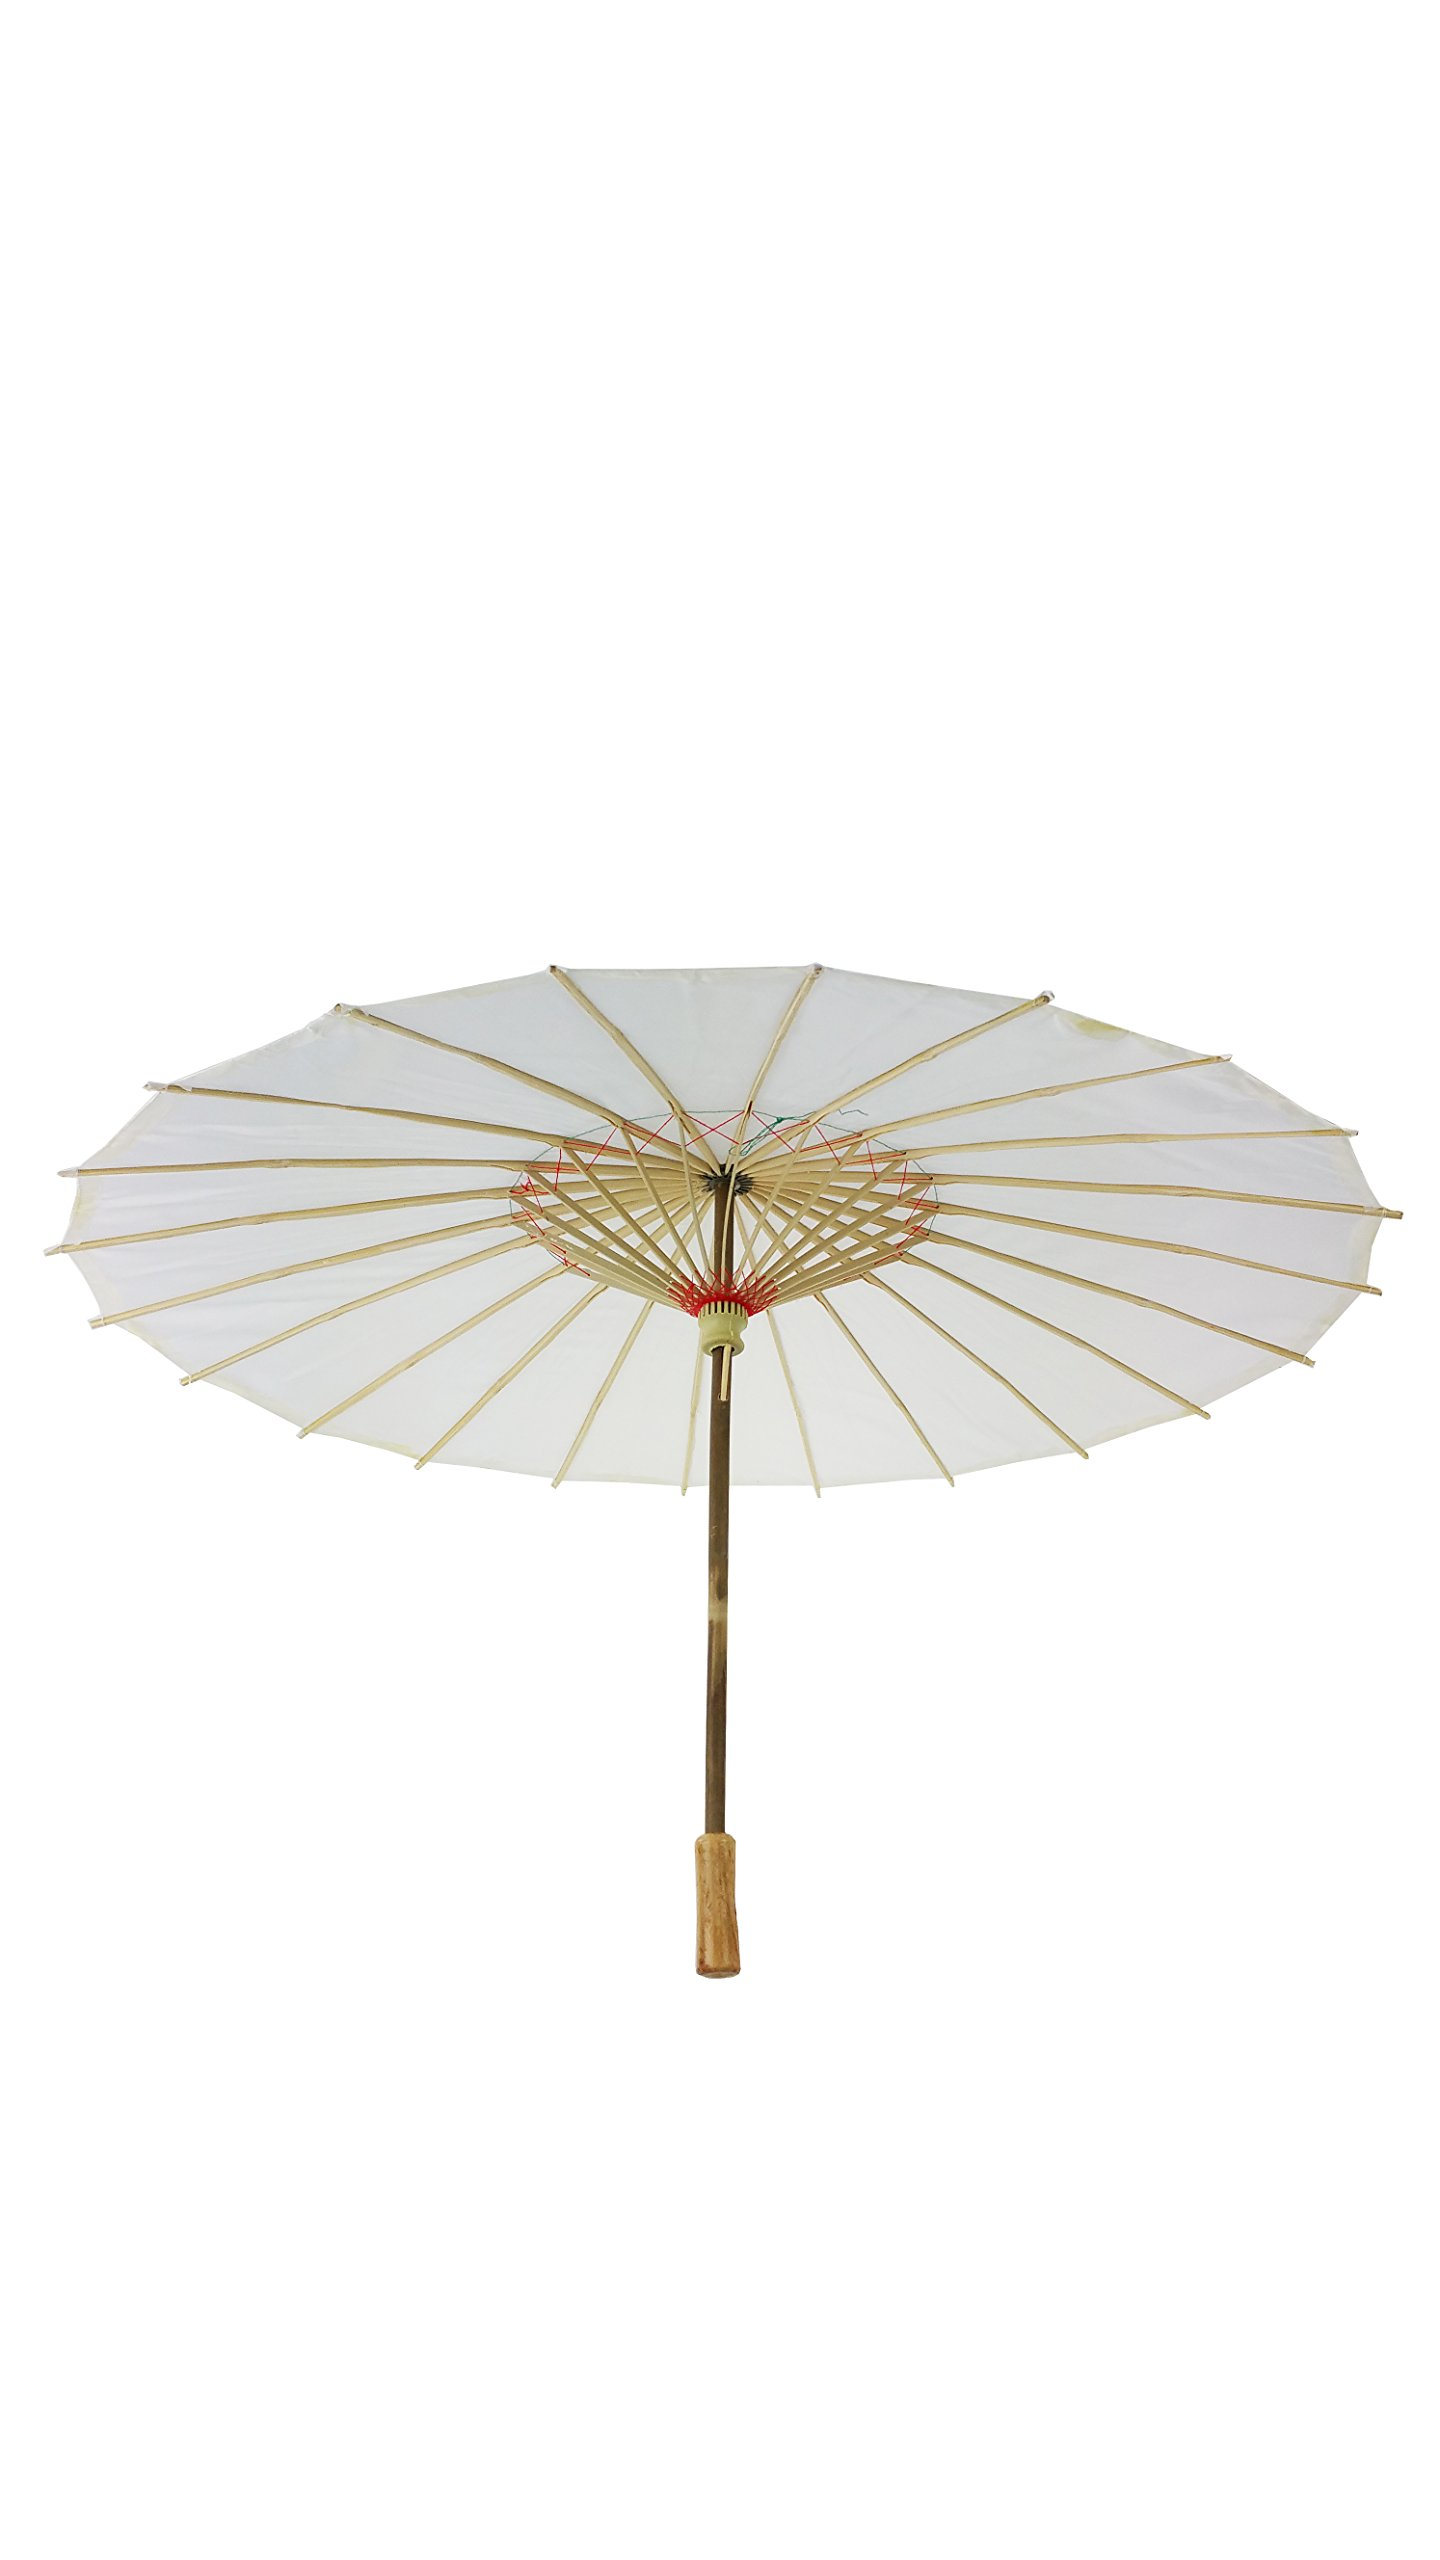 32 Inch Paper Like Parasol Umbrella - For Weddings, Bridal Showers, and Photo Shoots (White)